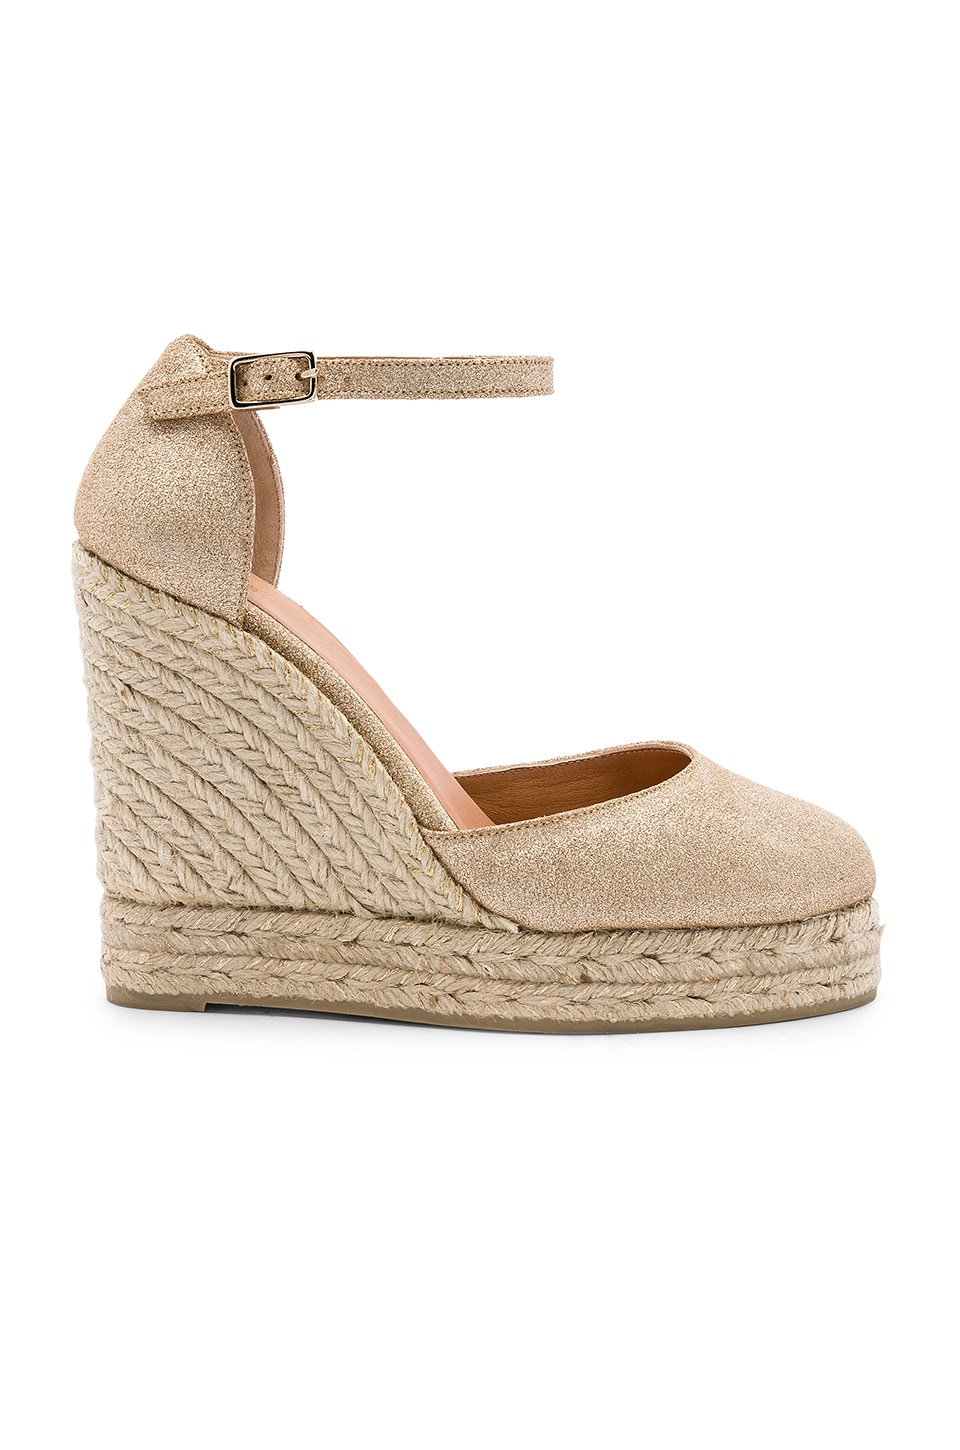 Castaner Carissa Wedge in Oro